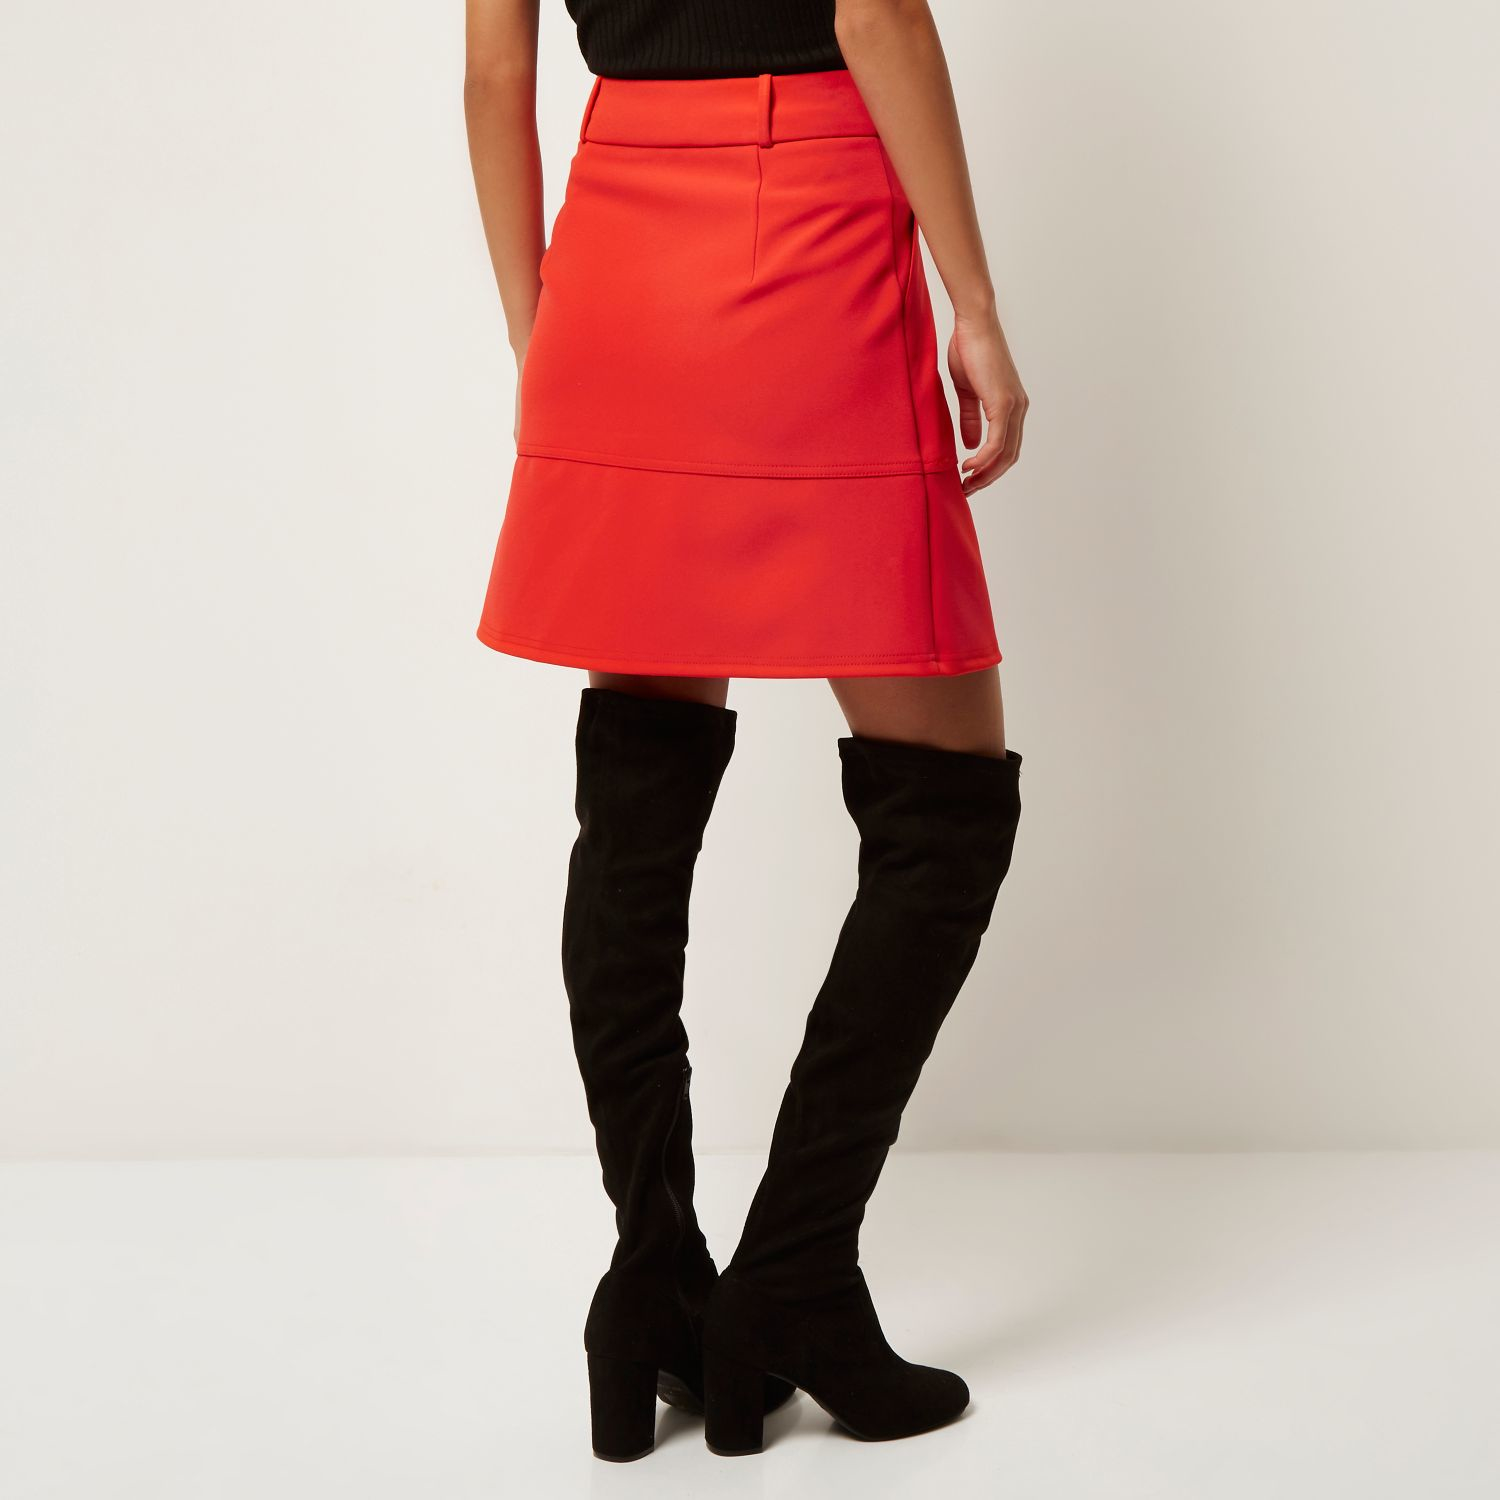 Red A Line Skirt - Skirts